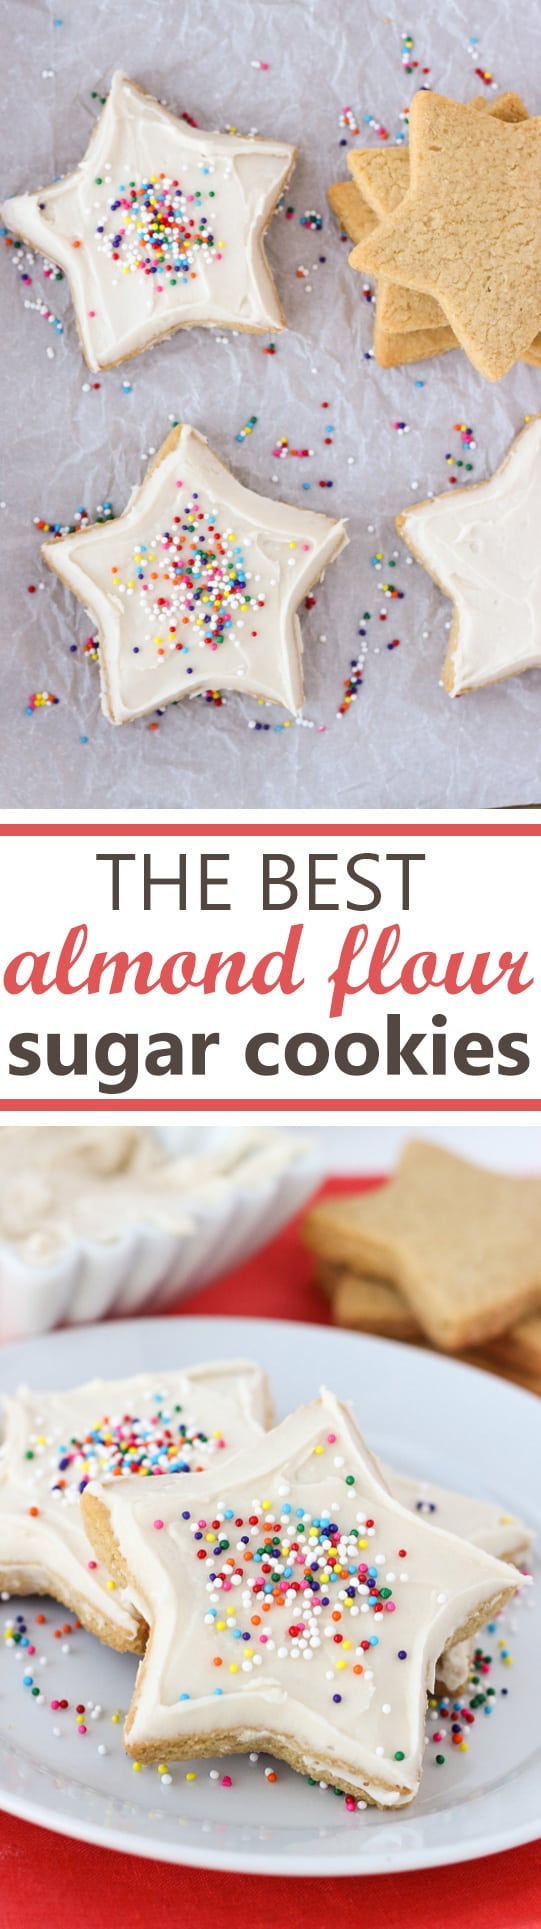 The Best Almond Flour Sugar Cookies! Soft in the middle and crispy on the edges. Easy to roll out and perfect for cut-outs!